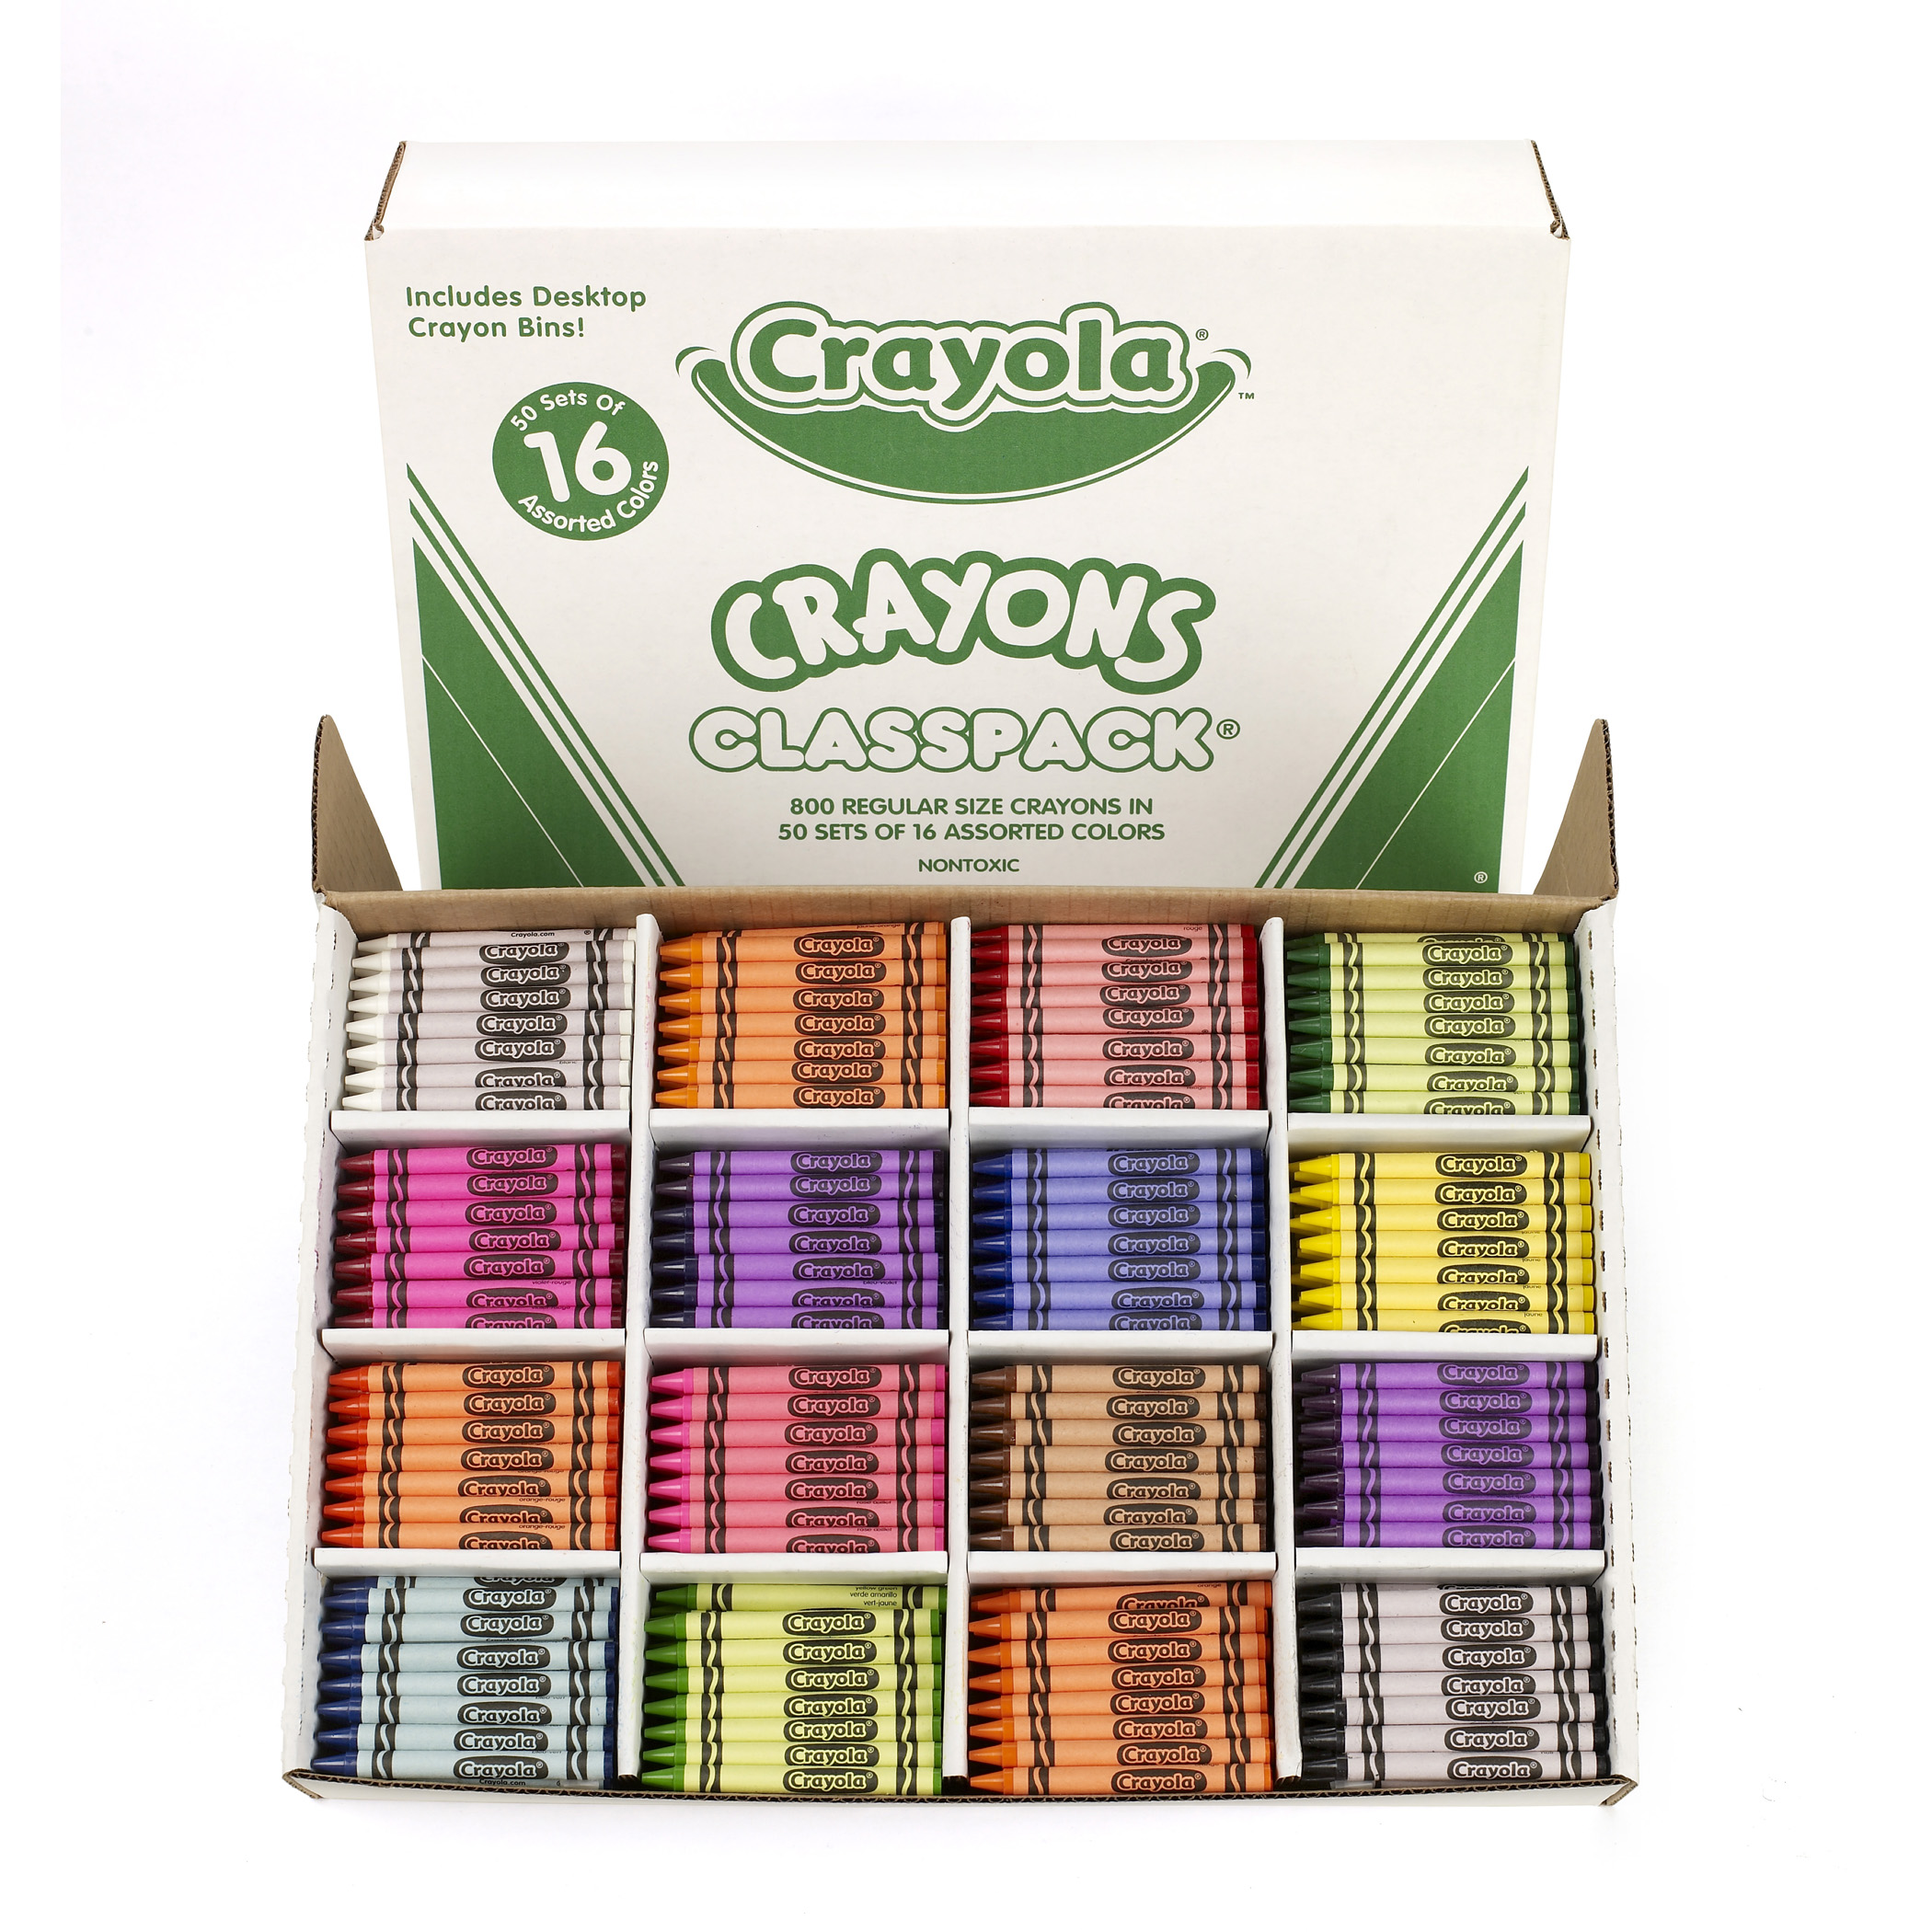 Crayola® Crayon Classpack, 16 Colors, Pack of 800